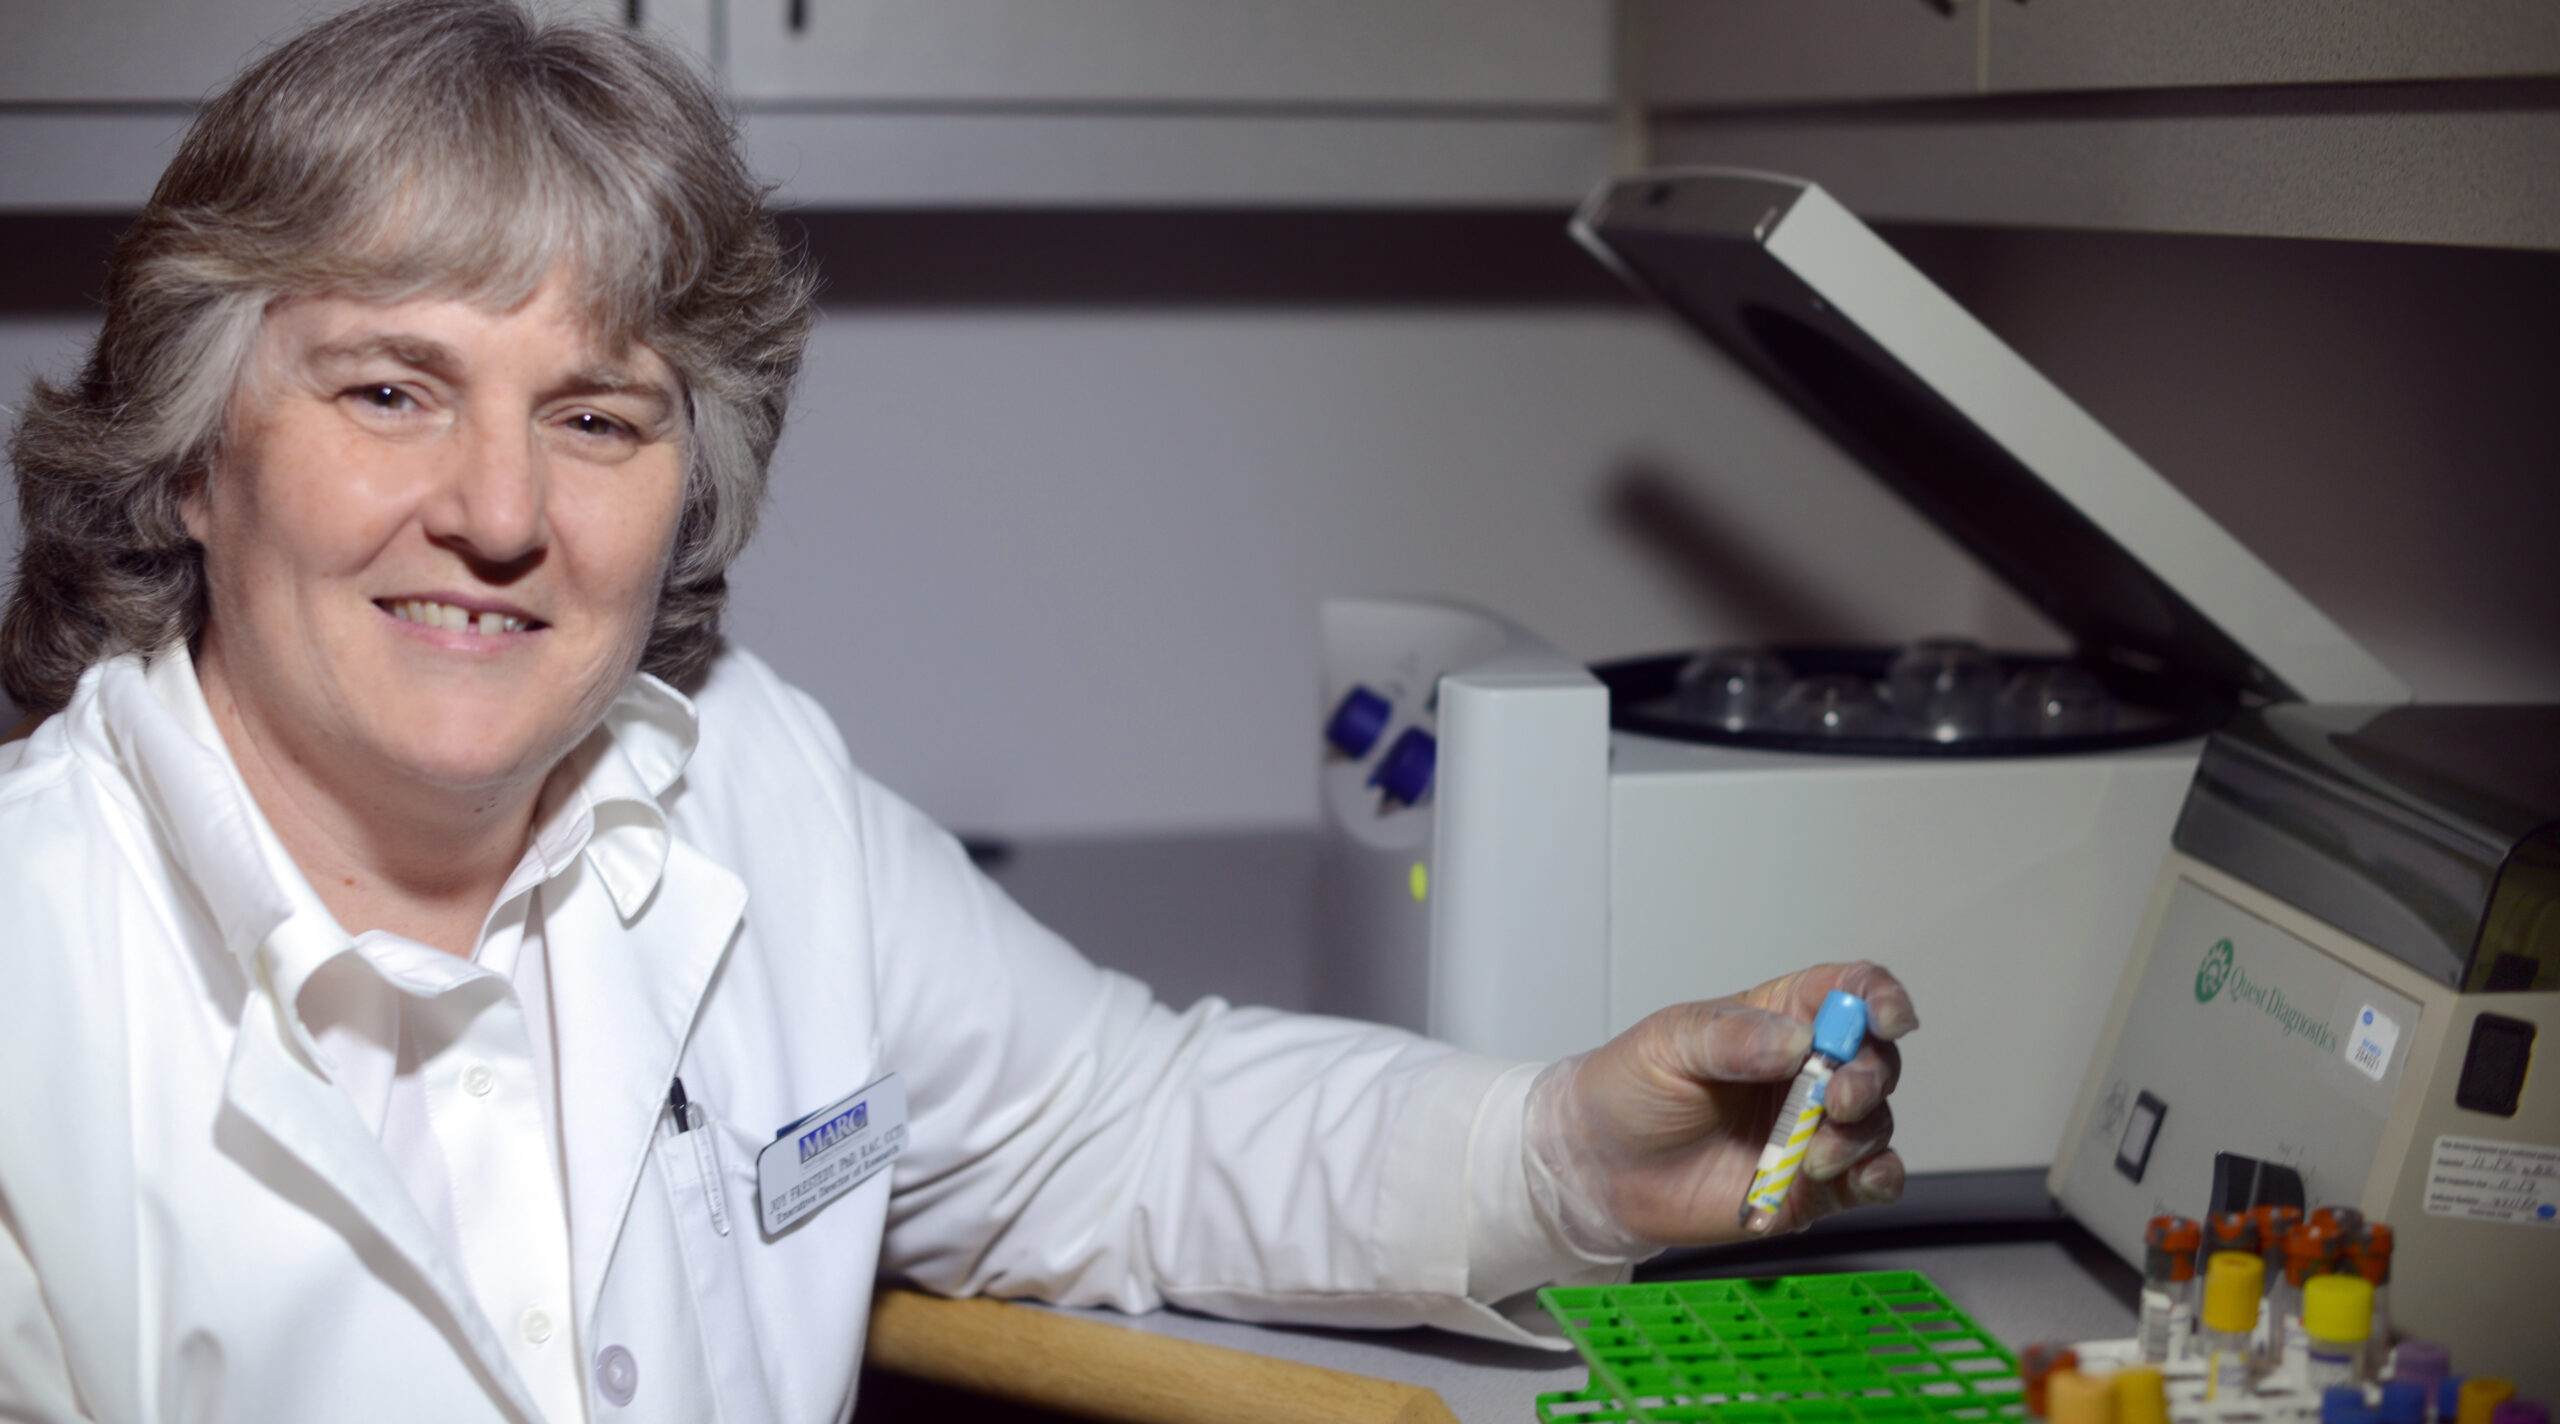 Dr. Joy Frestedt, smiling and holding a test tube in a lab